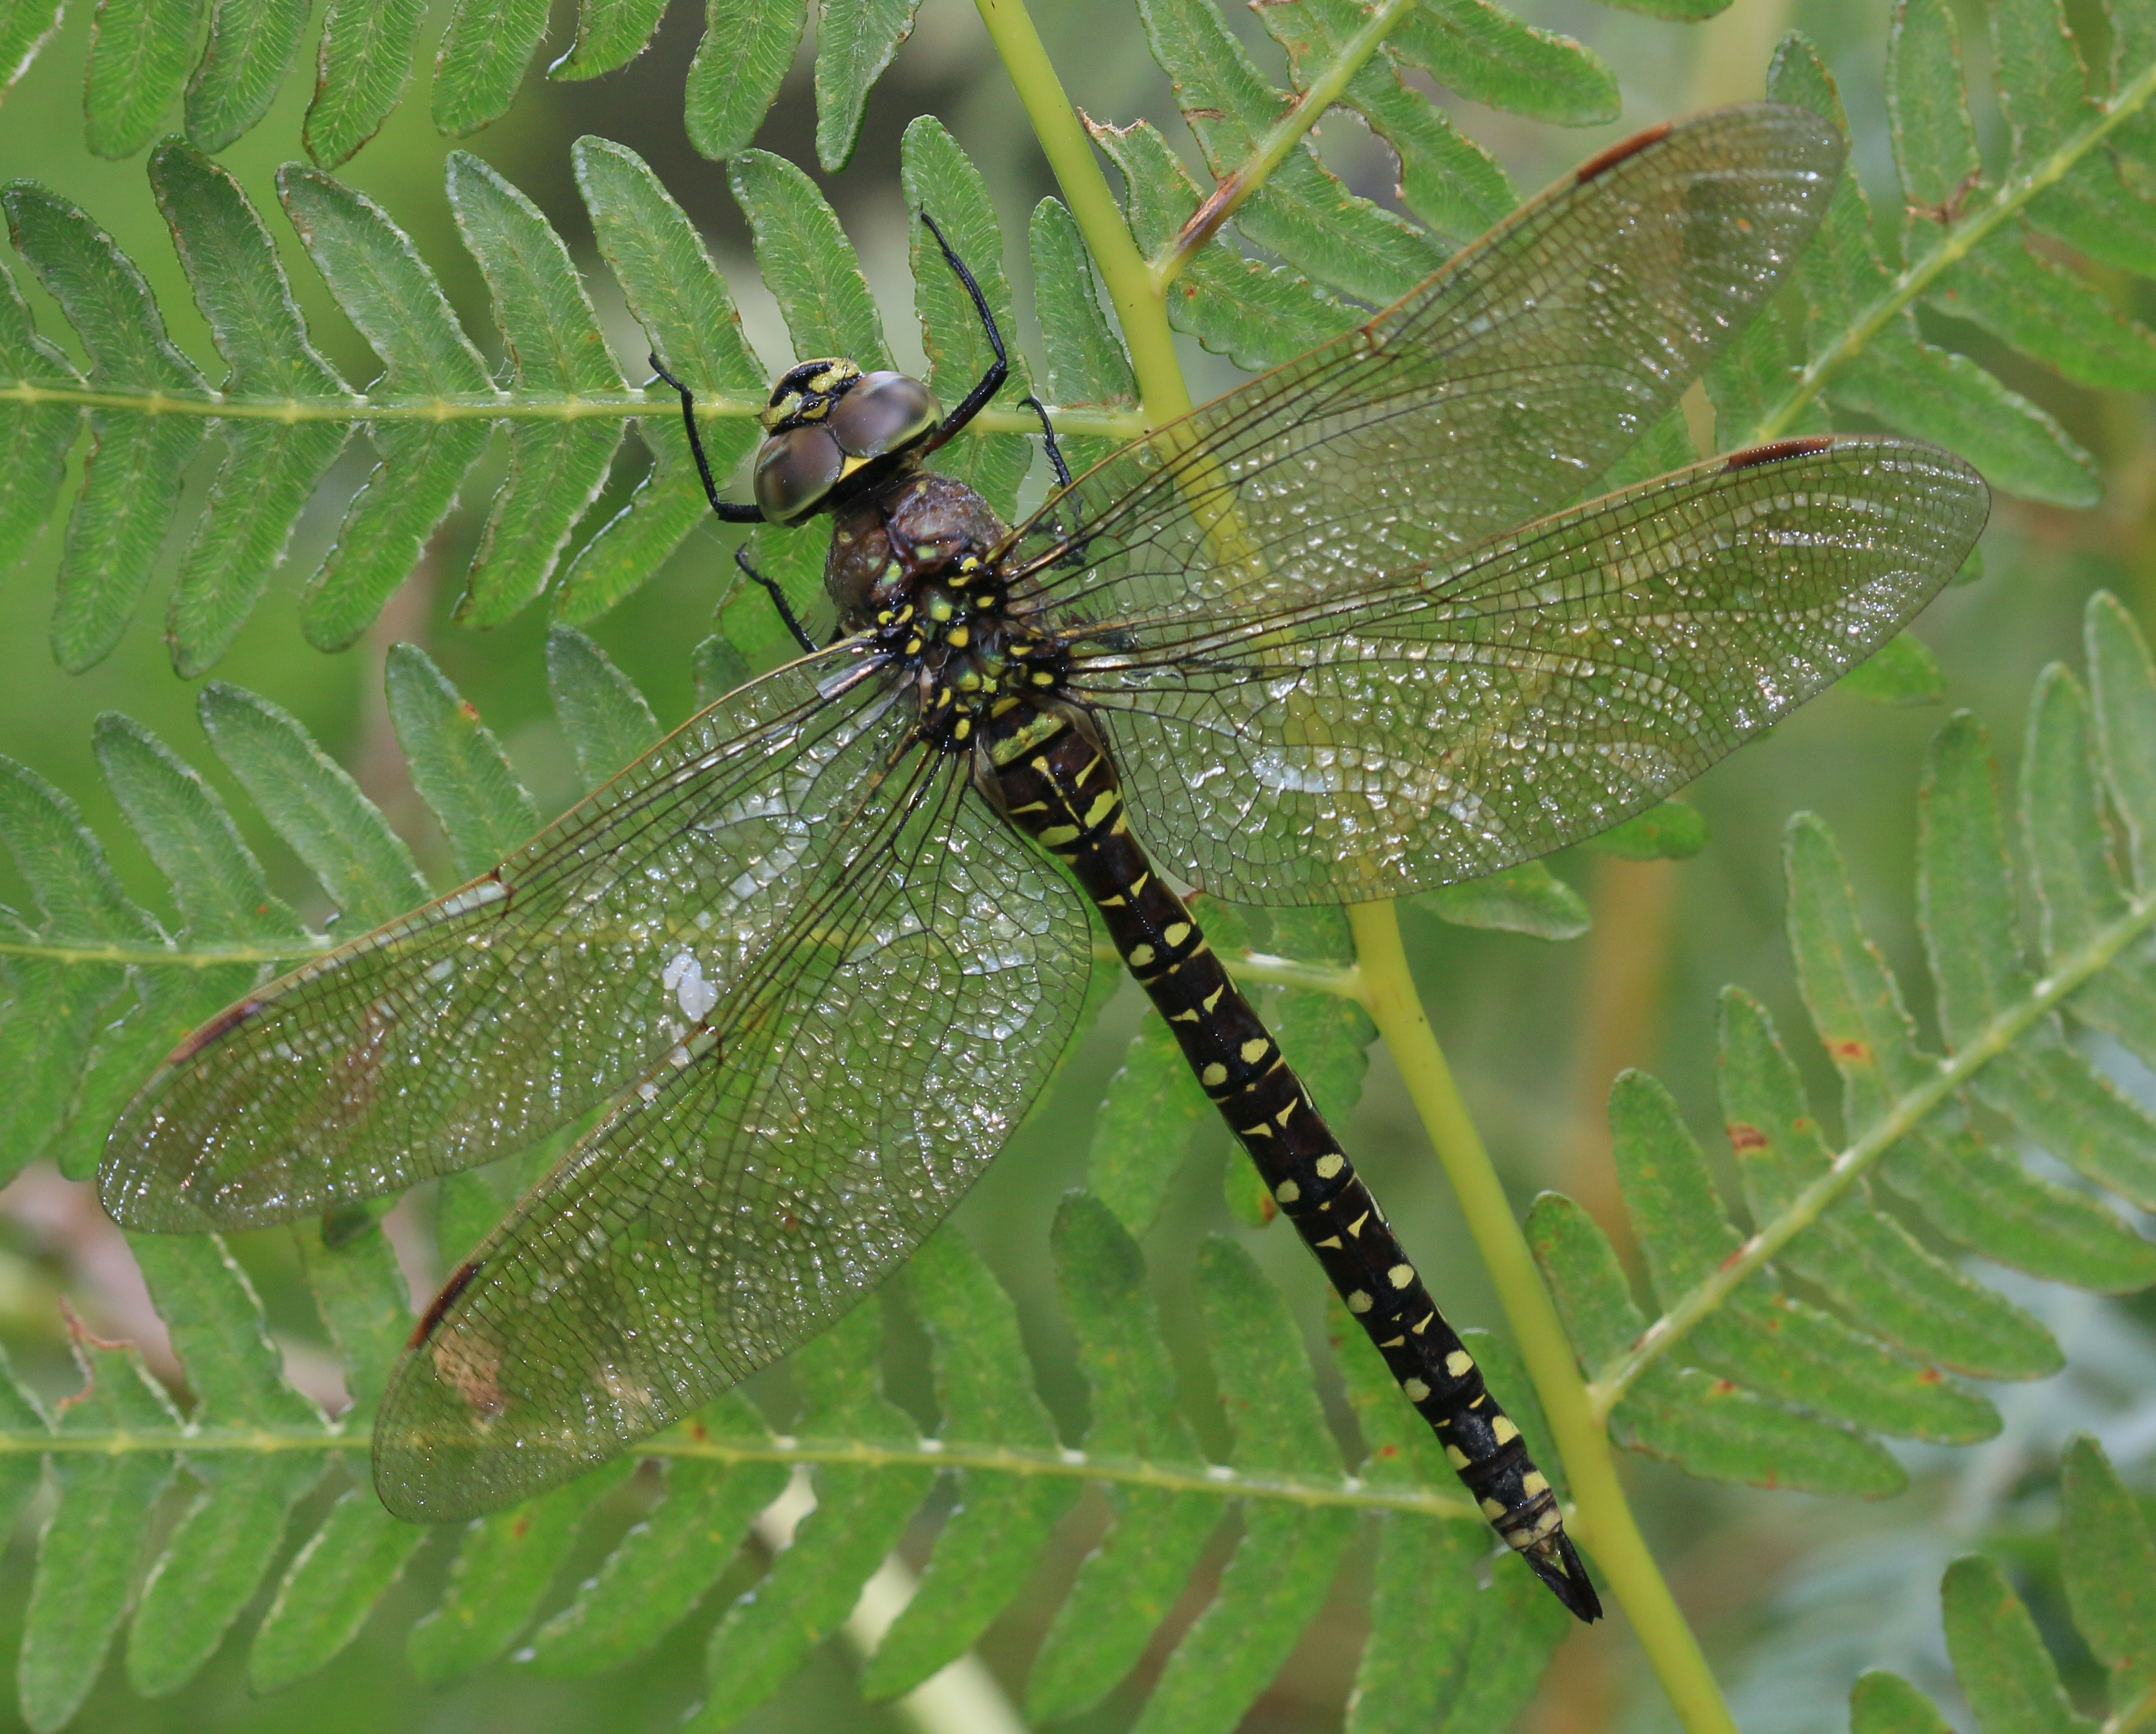 File:Aeshna juncea (Common Hawker) - female - Flickr - S. Rae (1).jpg -  Wikimedia Commons